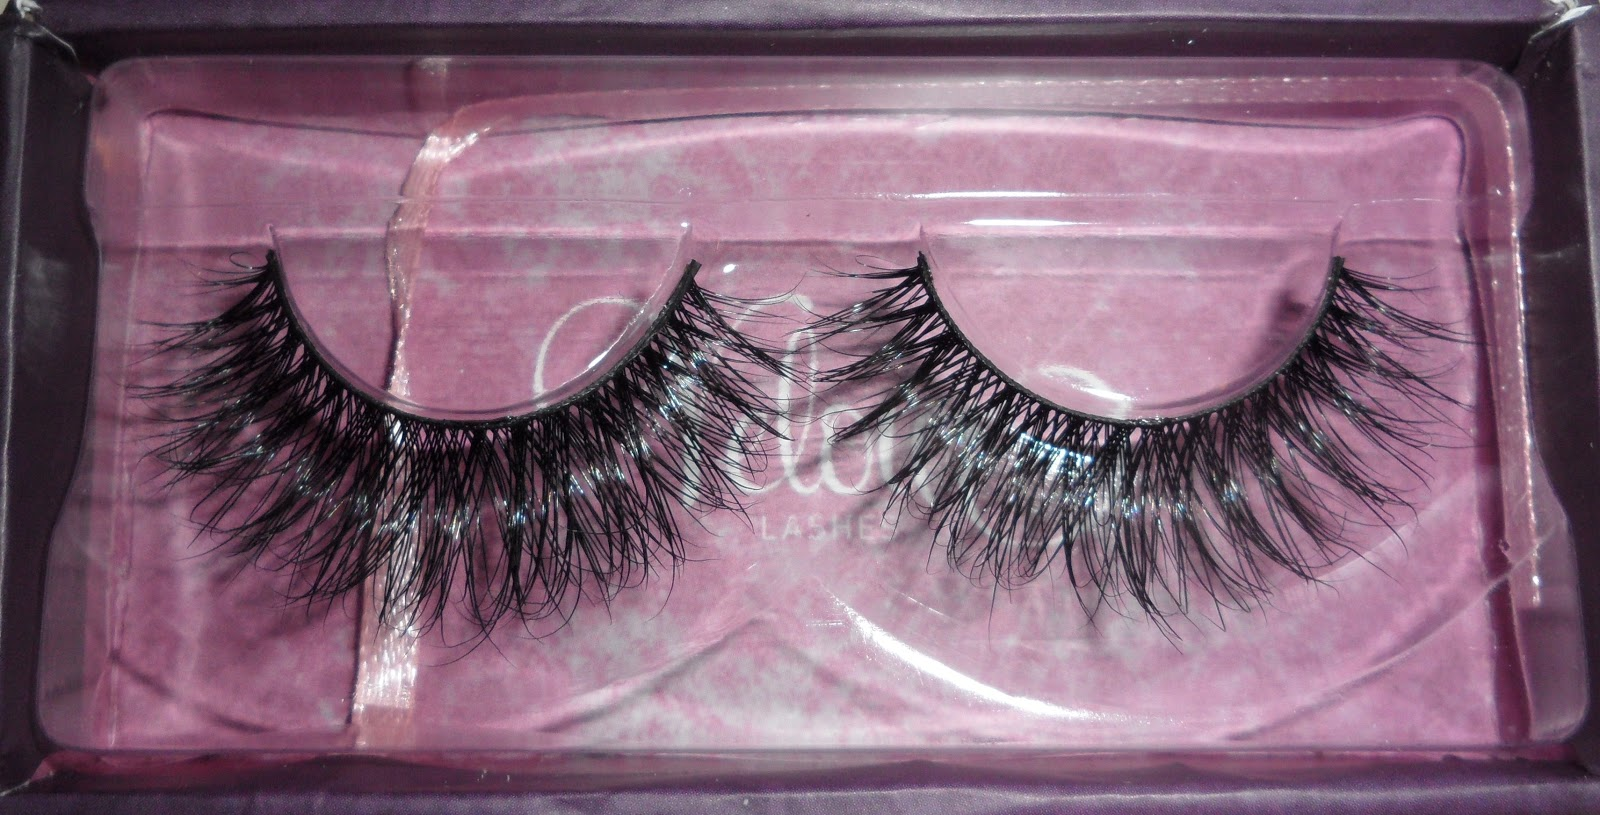 dc2bbff3c9a I'm here today with a review on Velour Lashes' Oops Naughty Me. To give a  brief background, Velour Lashes was founded by two best friends, Mabel and  Angela, ...